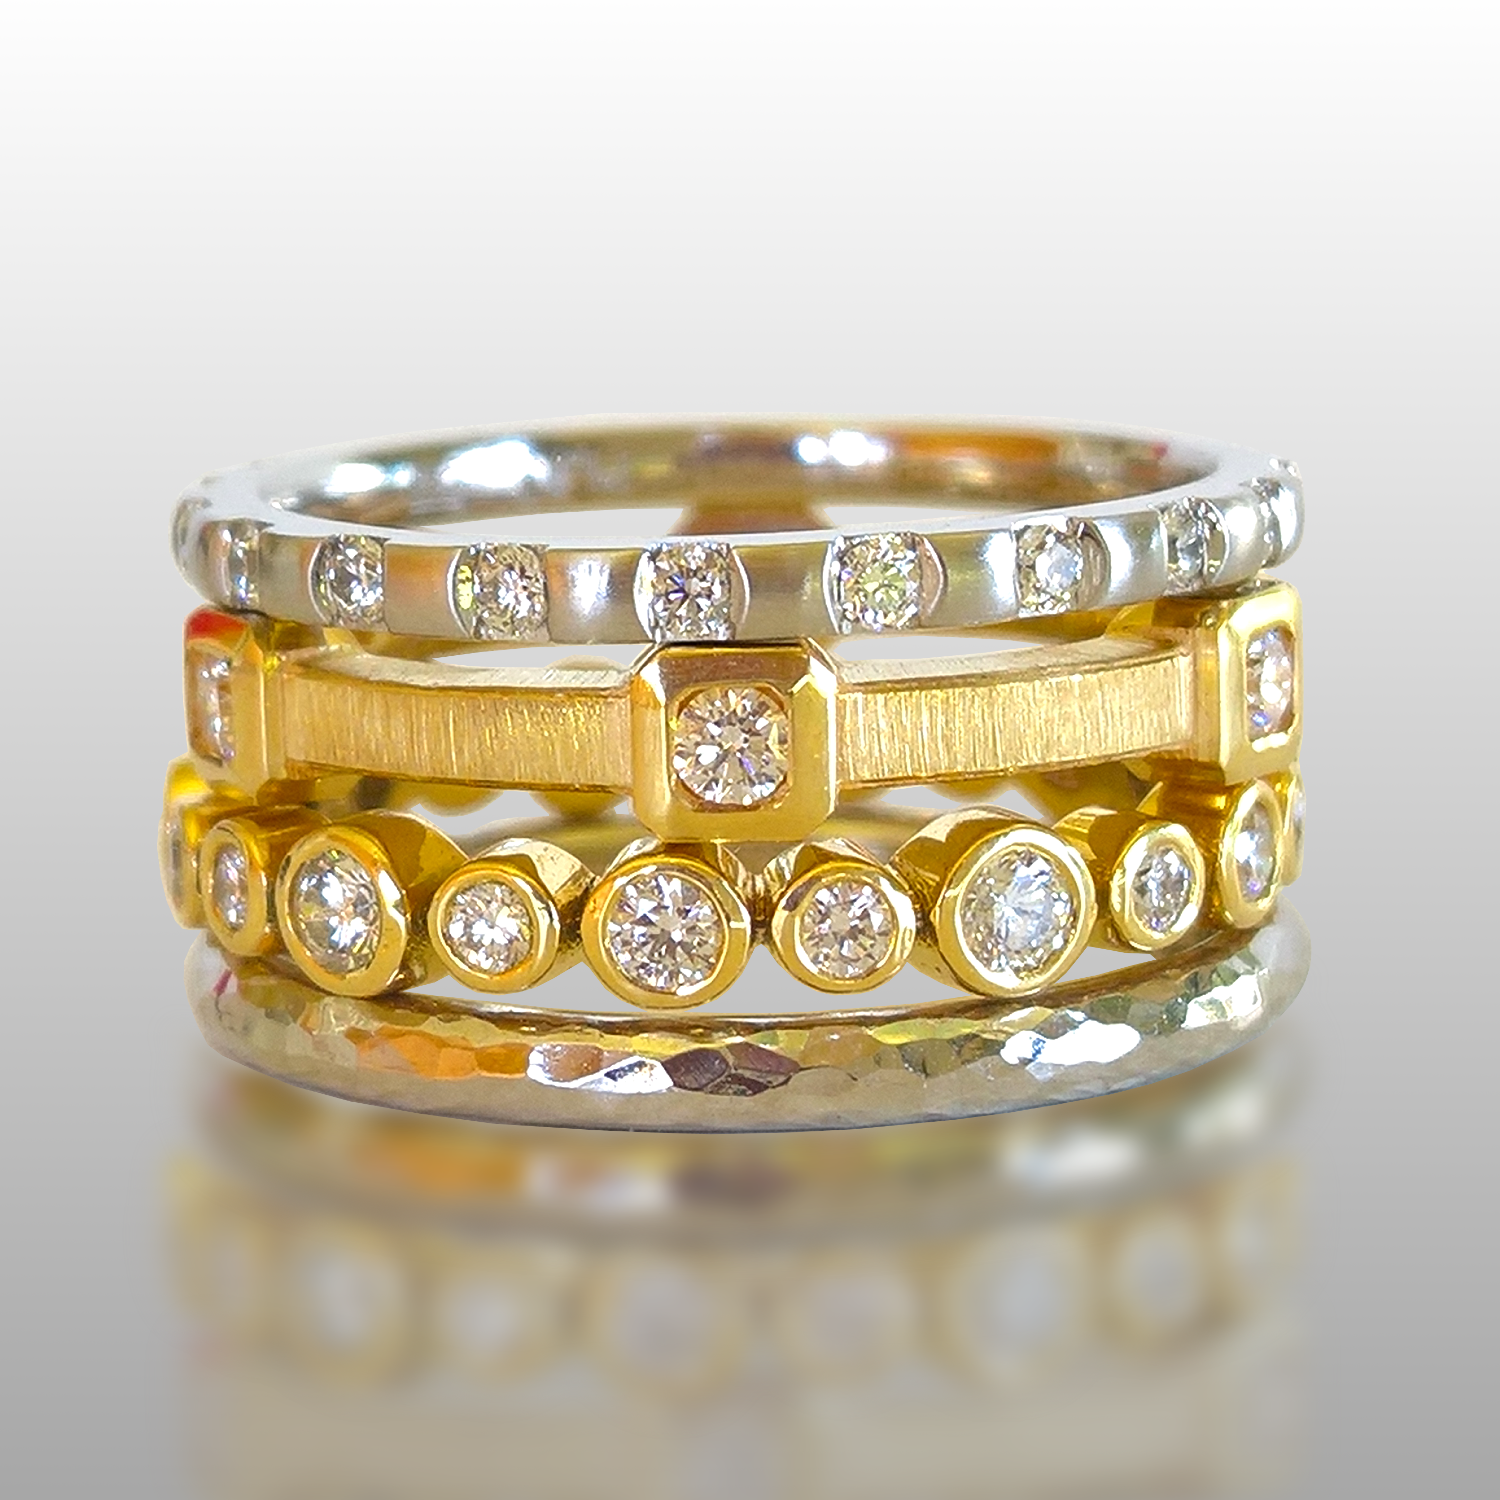 Diamond Eternity Stacking Rings in 22k Gold, 18k Gold and Platinum from the 'MOMENTI' Collection by Pratima Design Fine Art Jewelry